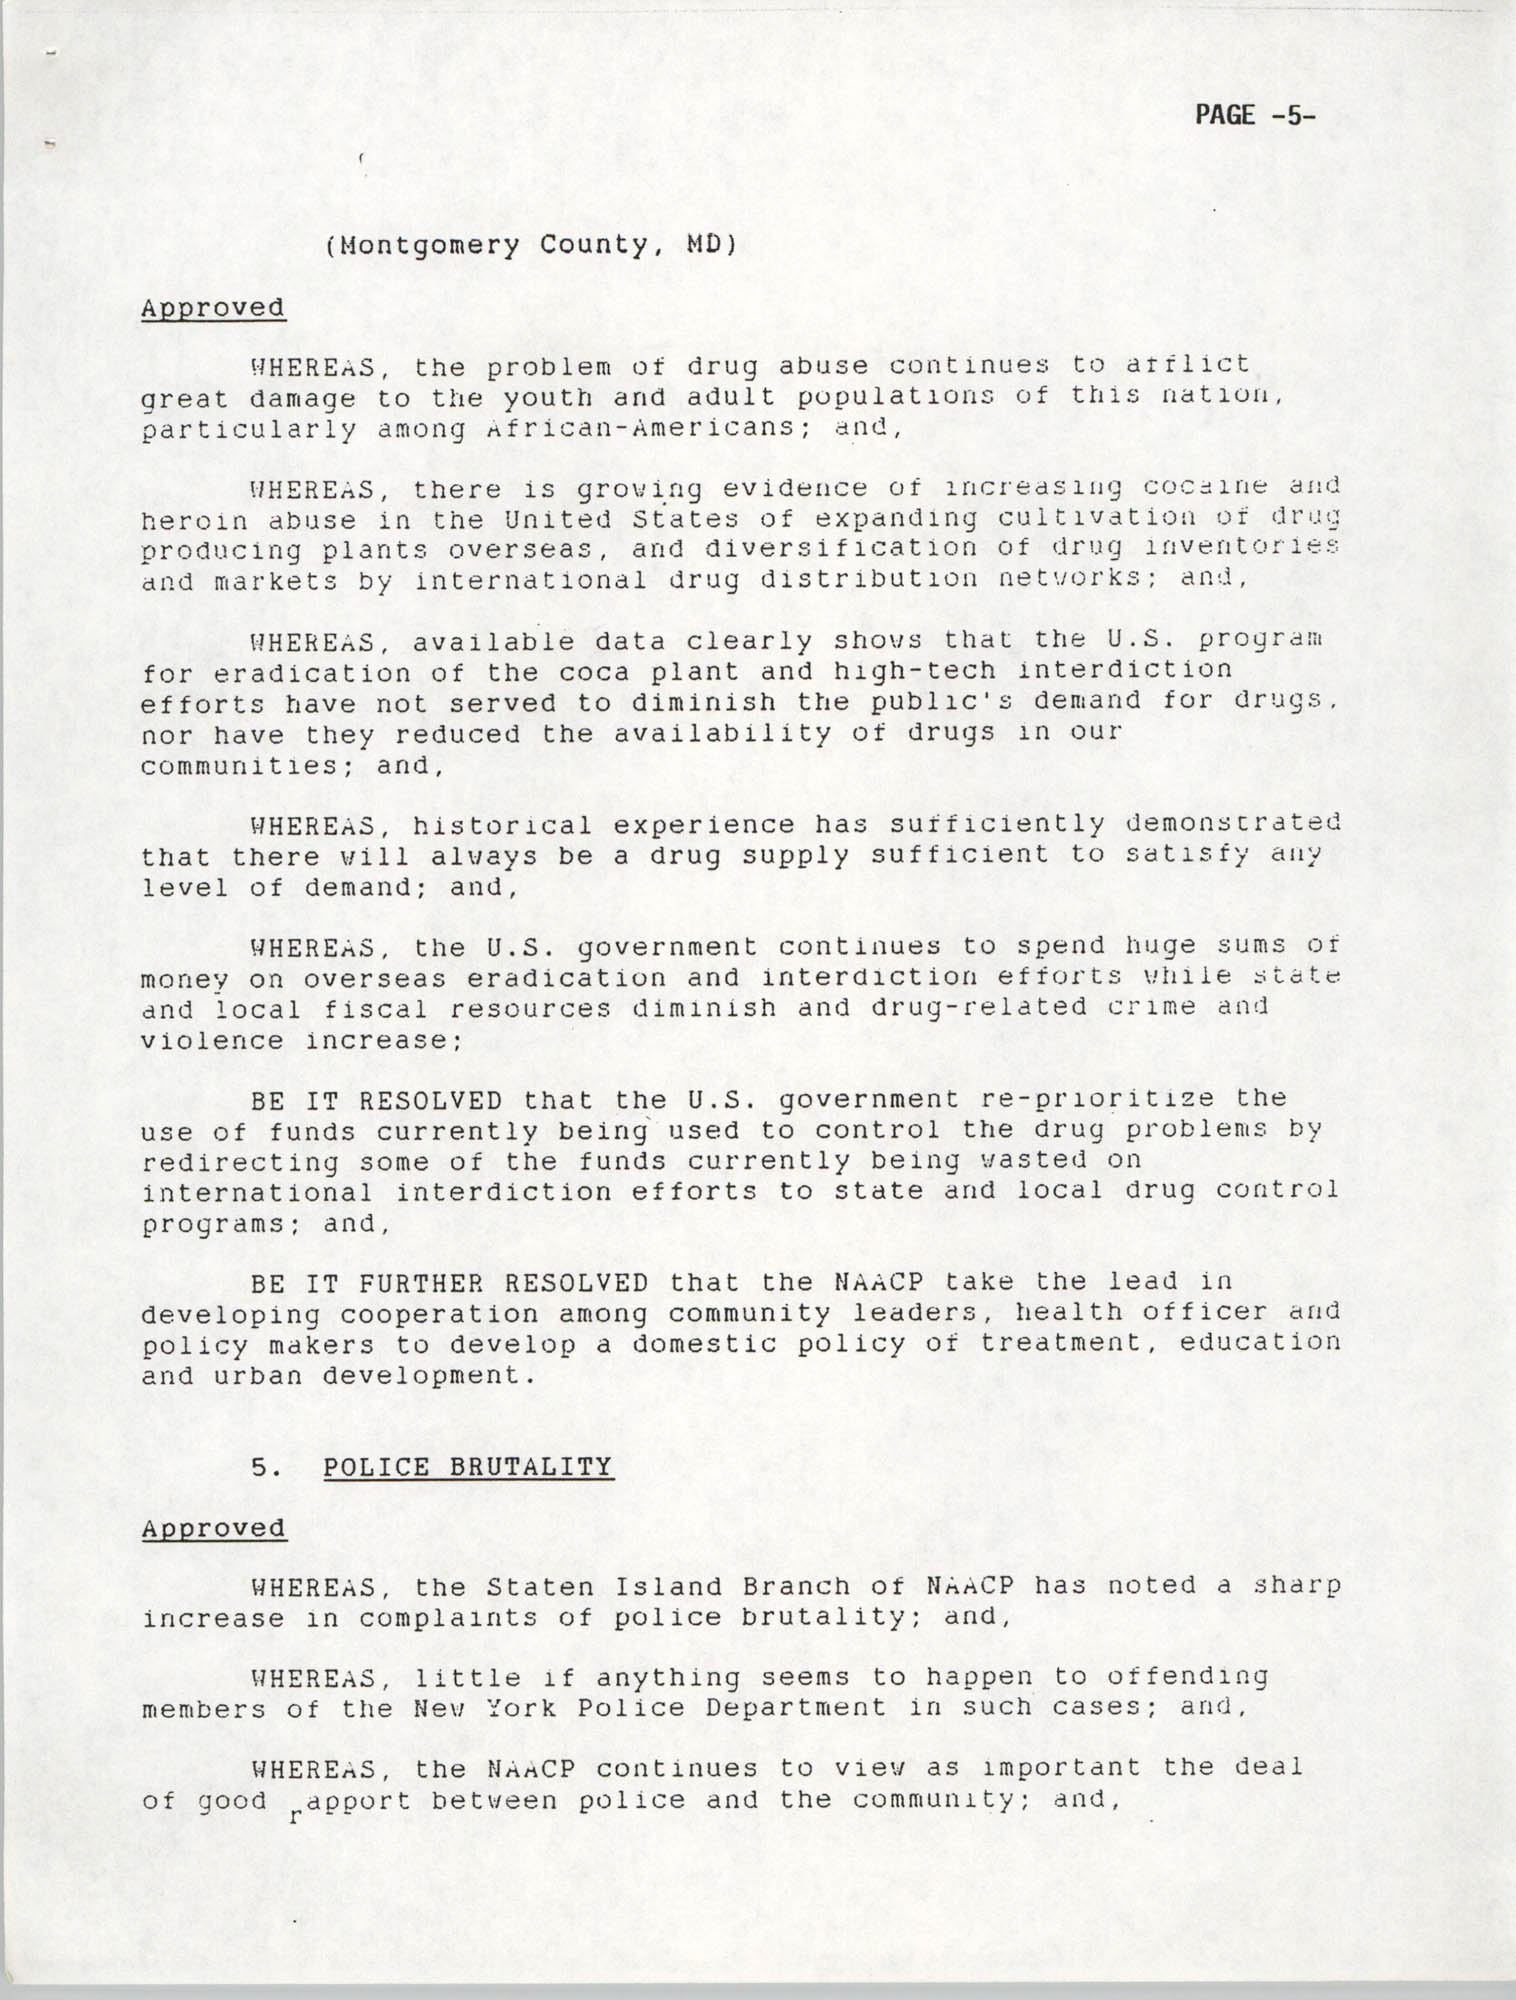 Resolutions Submitted Under Article X, Section 2 of the Constitution of the NAACP, 1992, Page 5